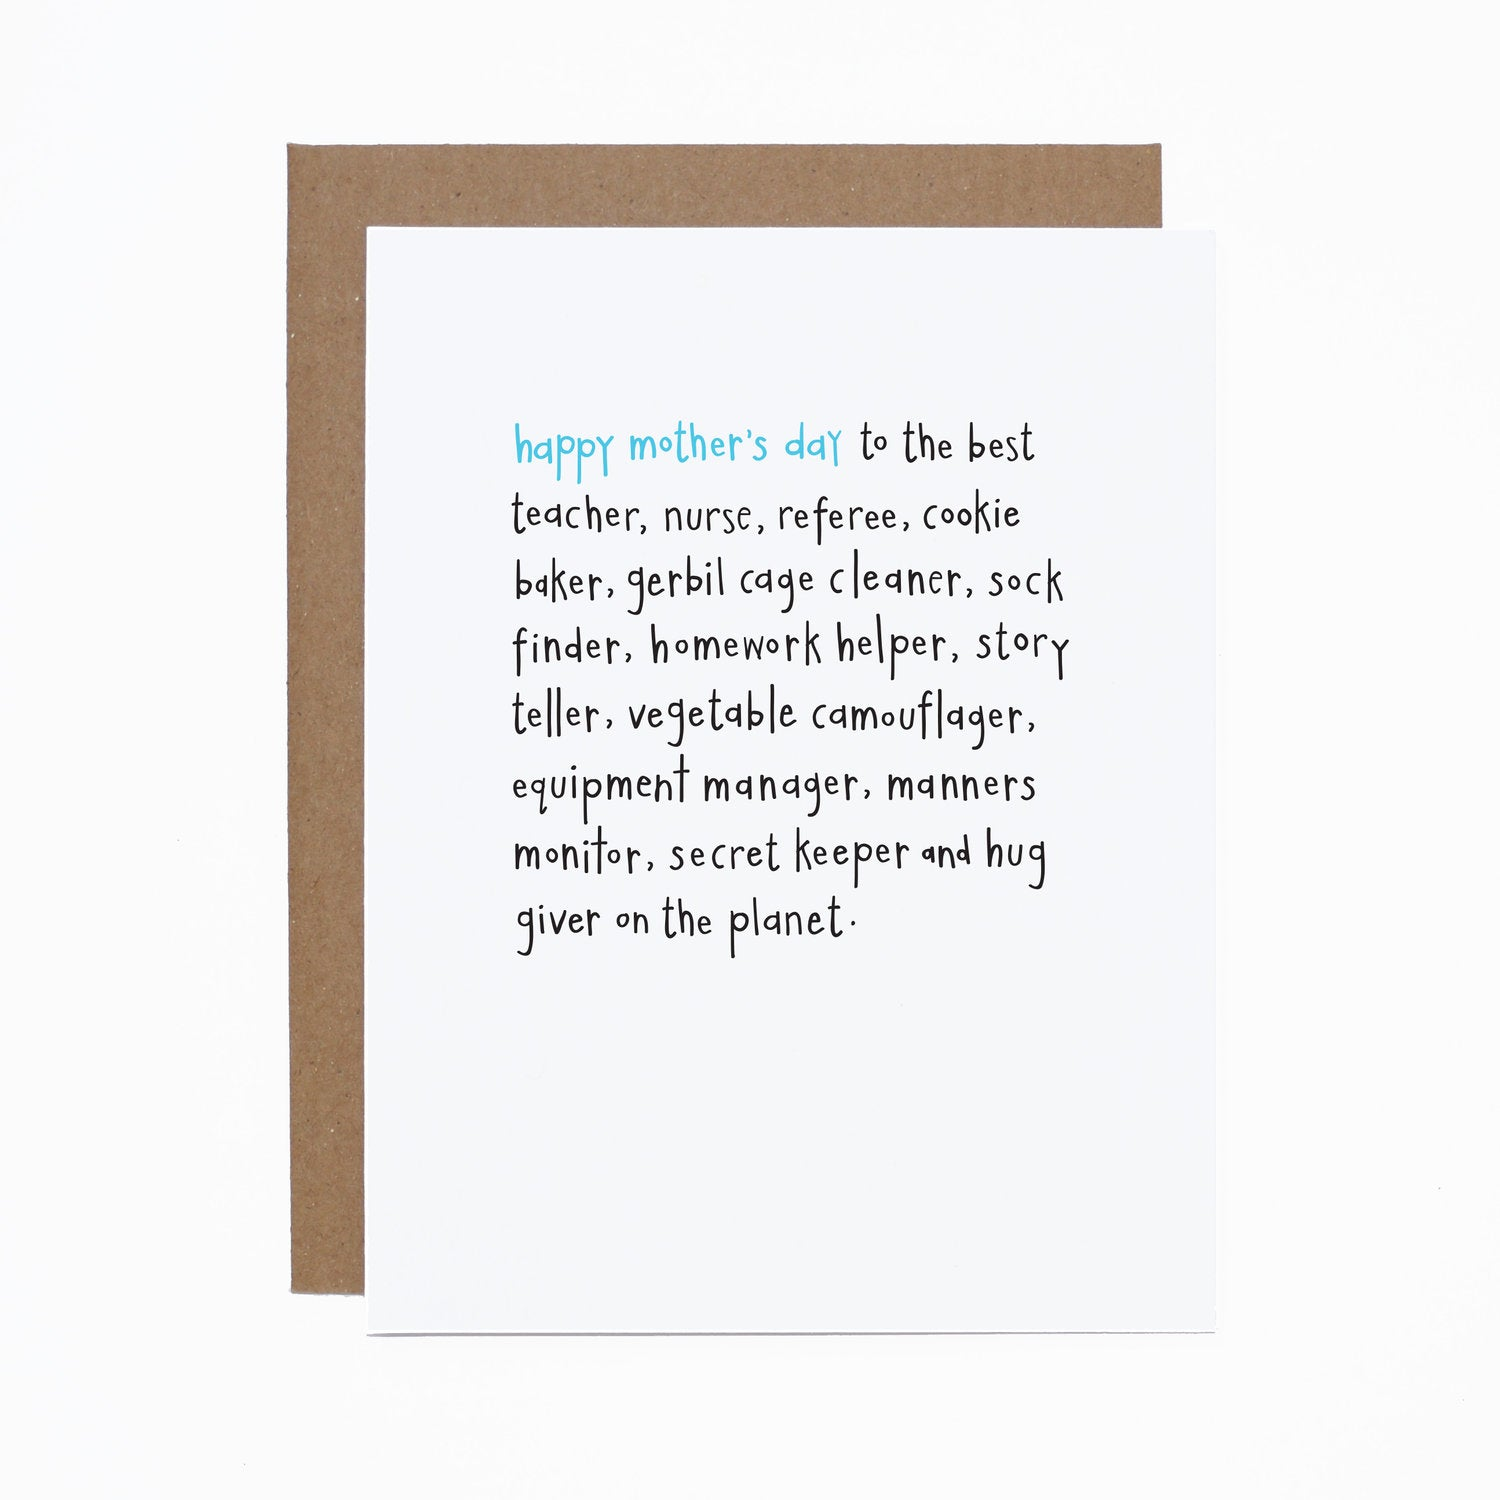 Mother's Day (on the planet) card